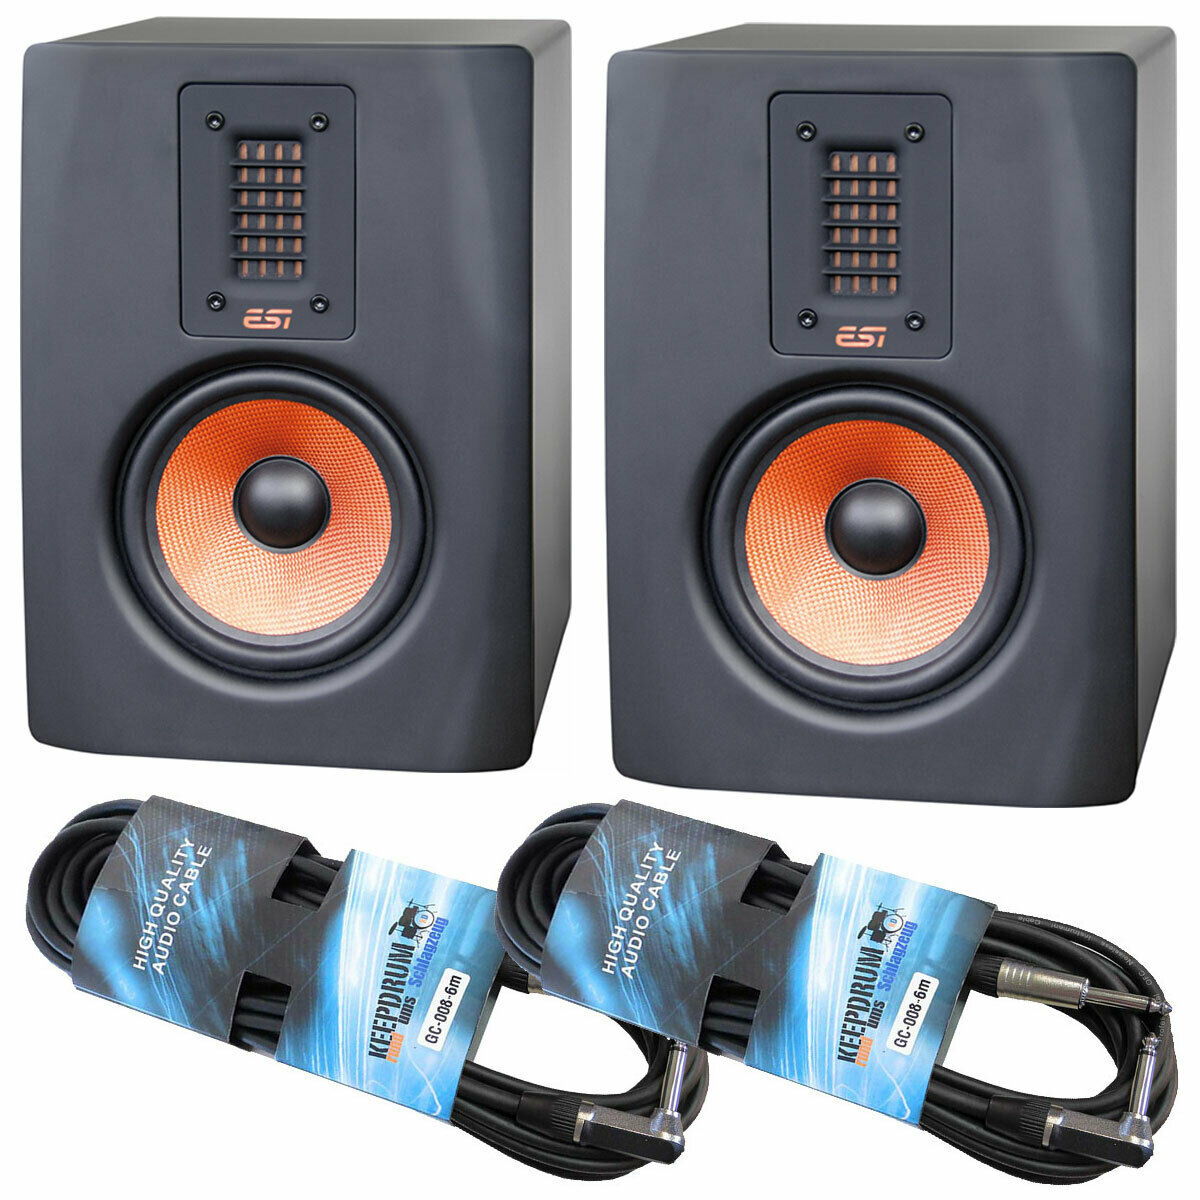 ESI Unik 05+ aktive Studio Monitor-Boxen 1 Paar + 2x keepdrum Klinkenkabel 6m